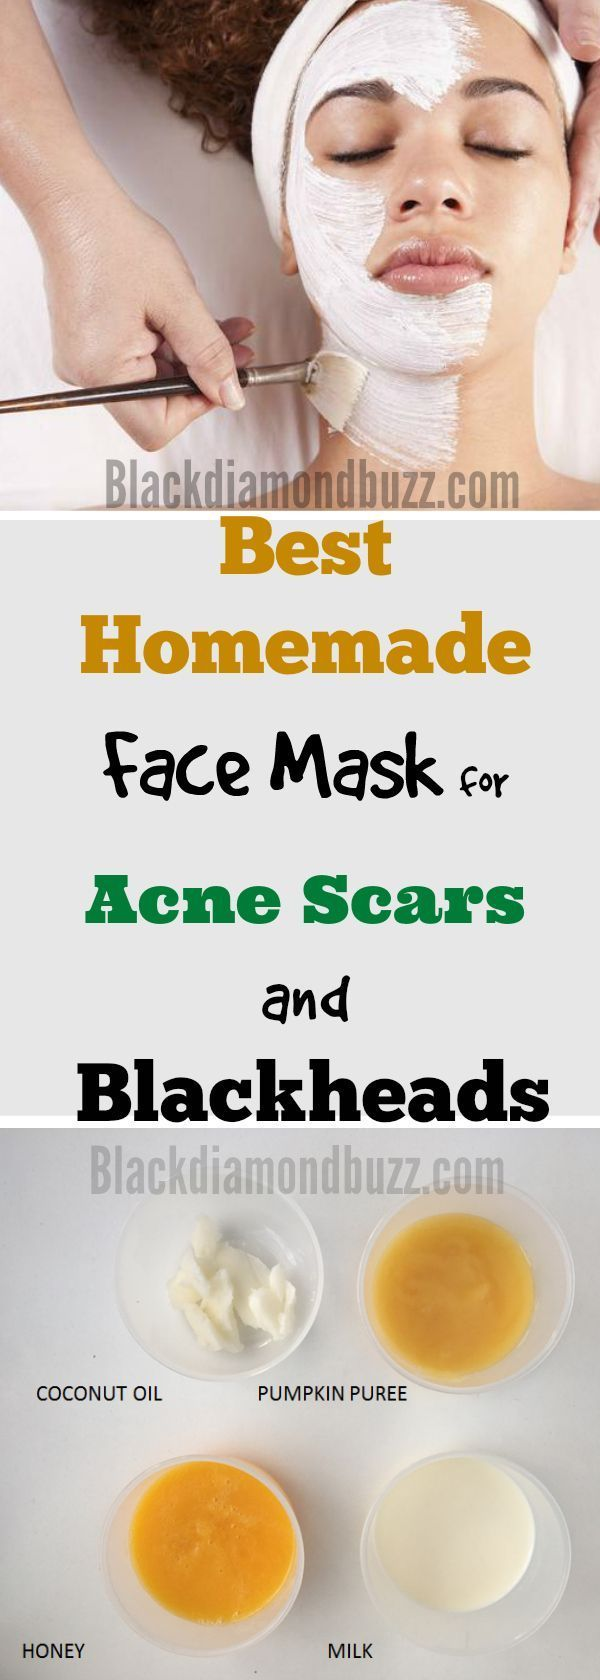 DIY Face Mask for Acne | 7 Best Homemade Face Mask…